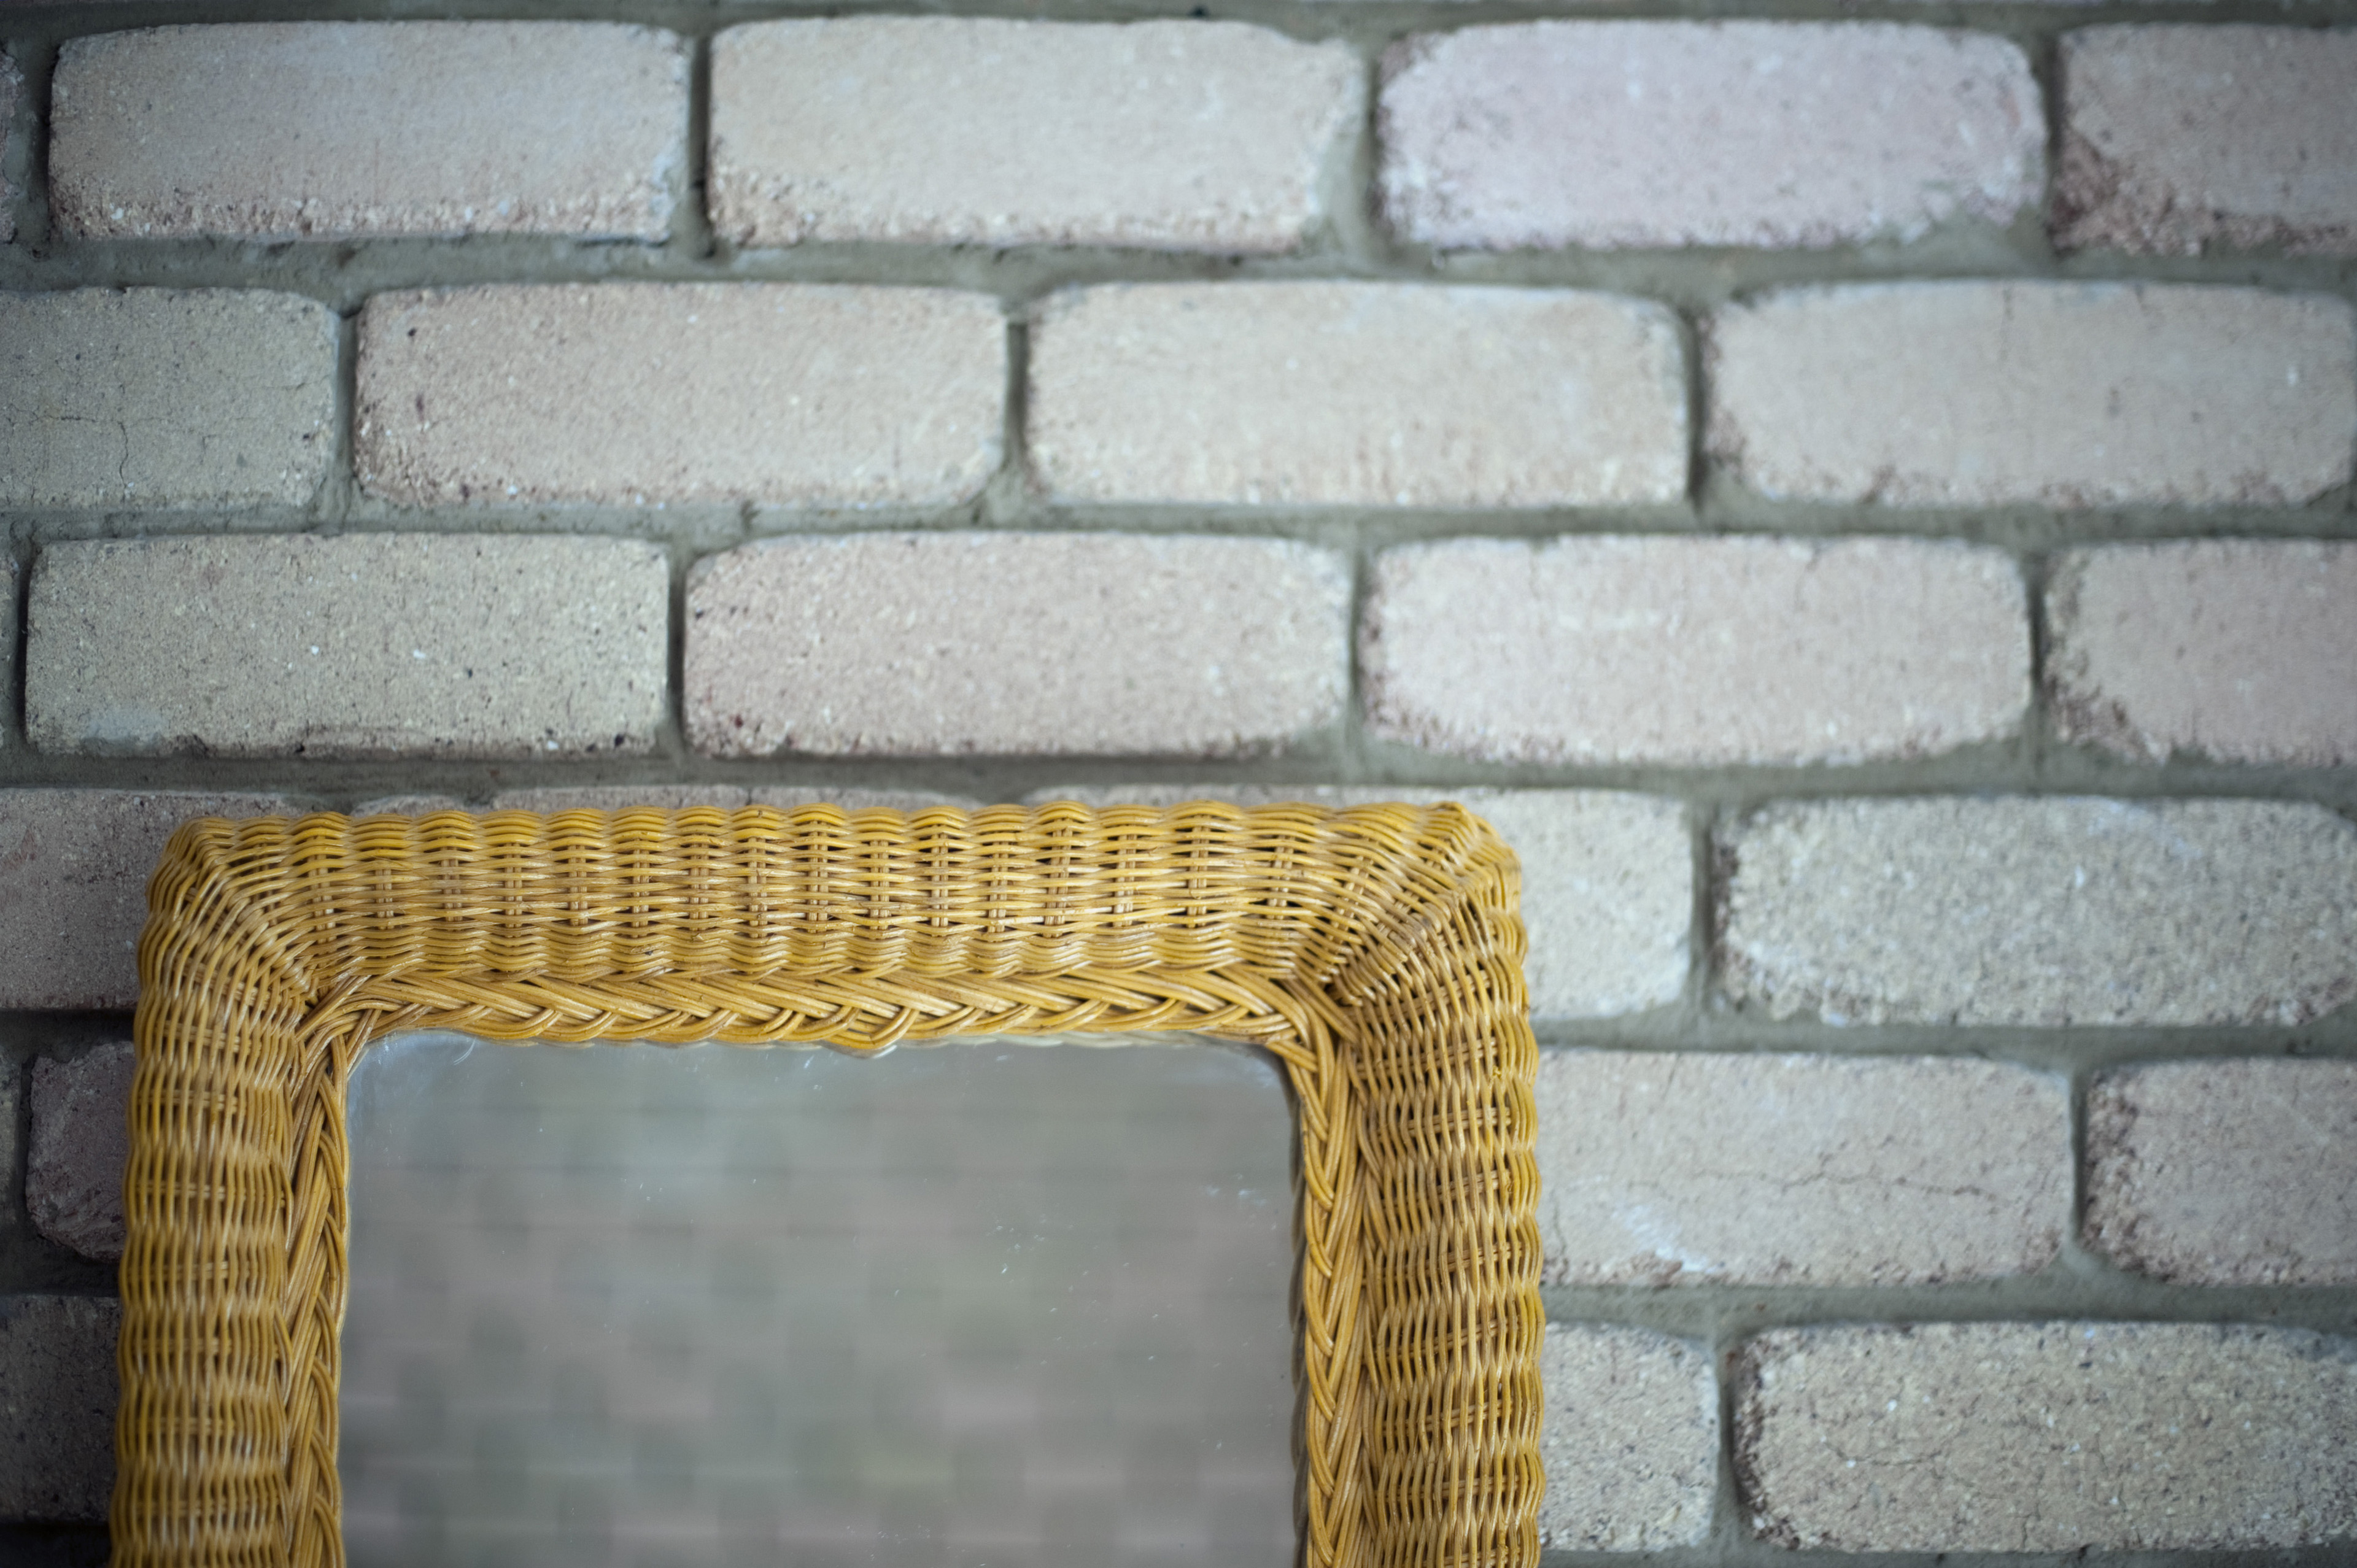 Rattan or wicker framed mirror standing against a rustic white painted brick wall reflecting the brickwork